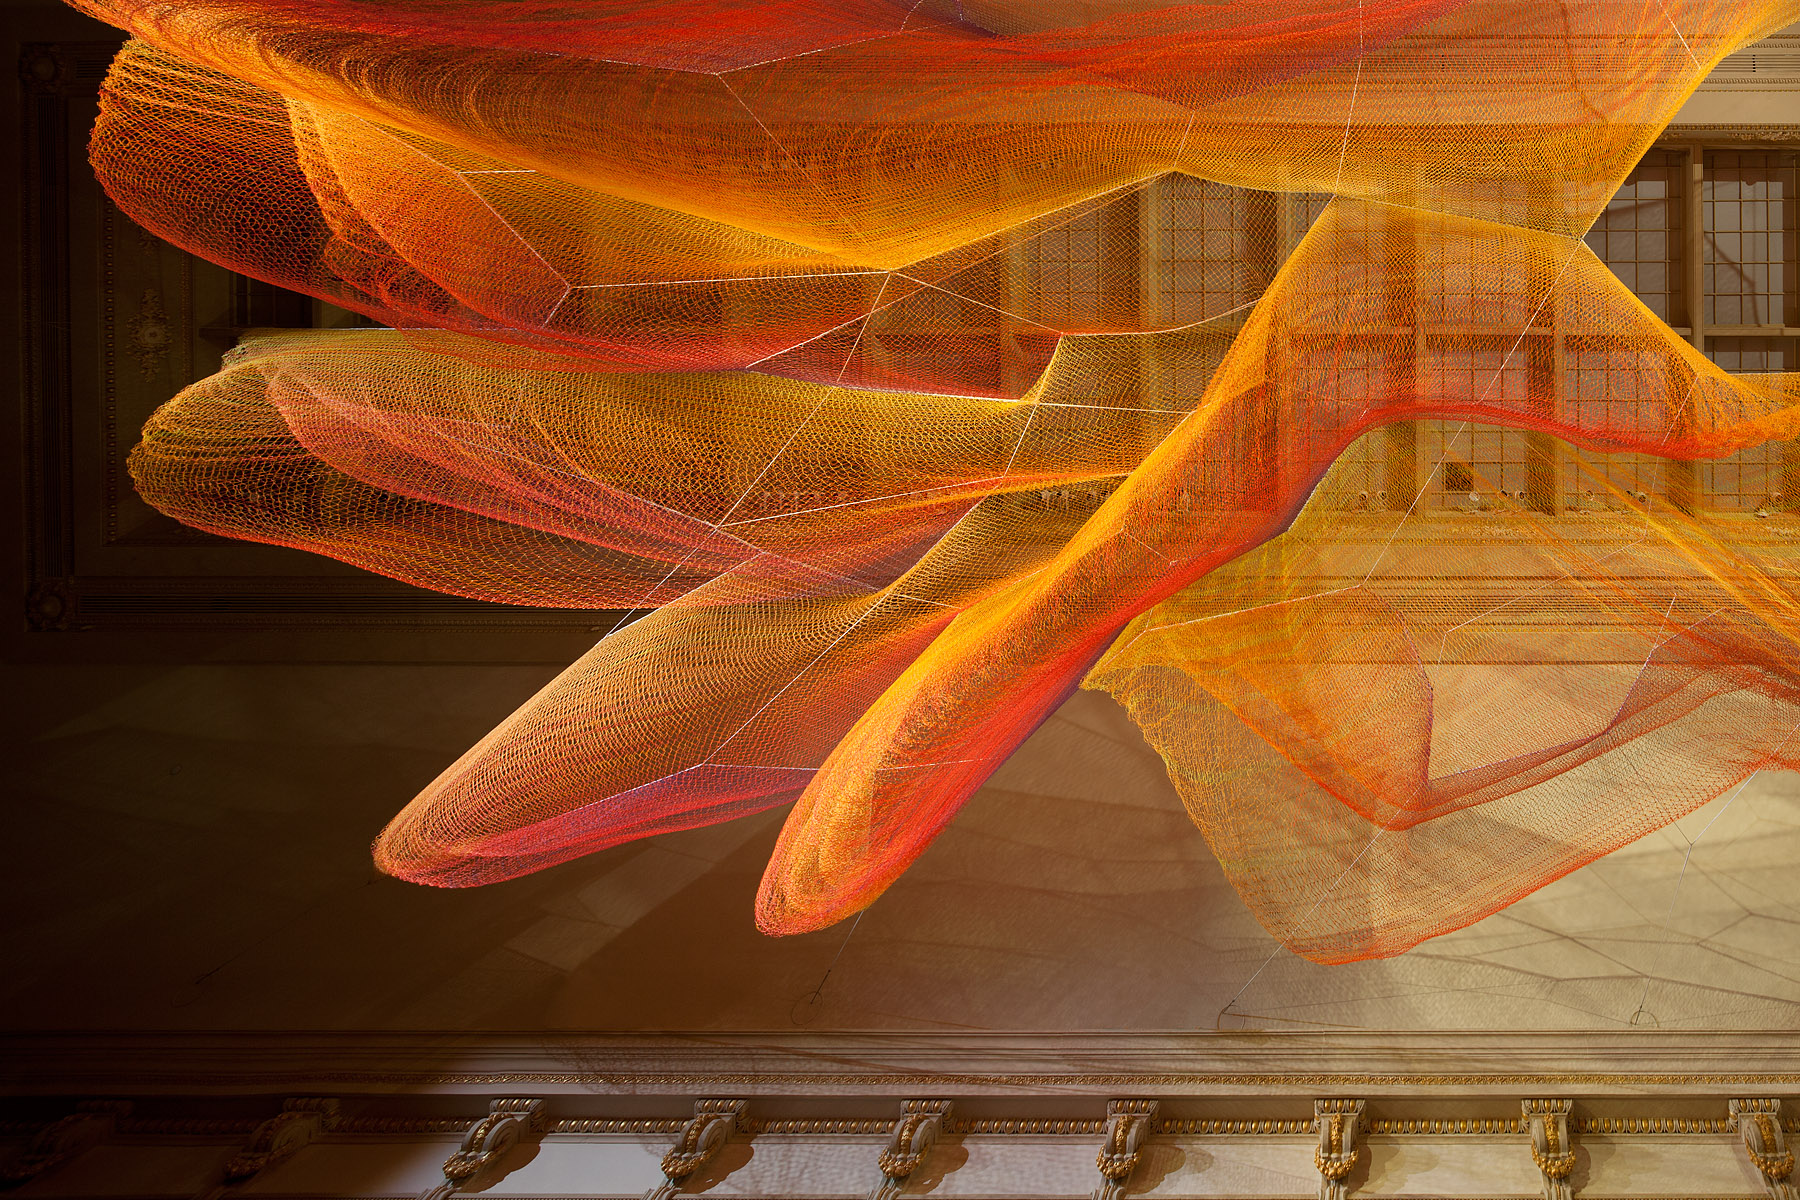 wonder exhibit at renwick gallery. photos courtesy of the Smithsonian's website - (cool) progeny